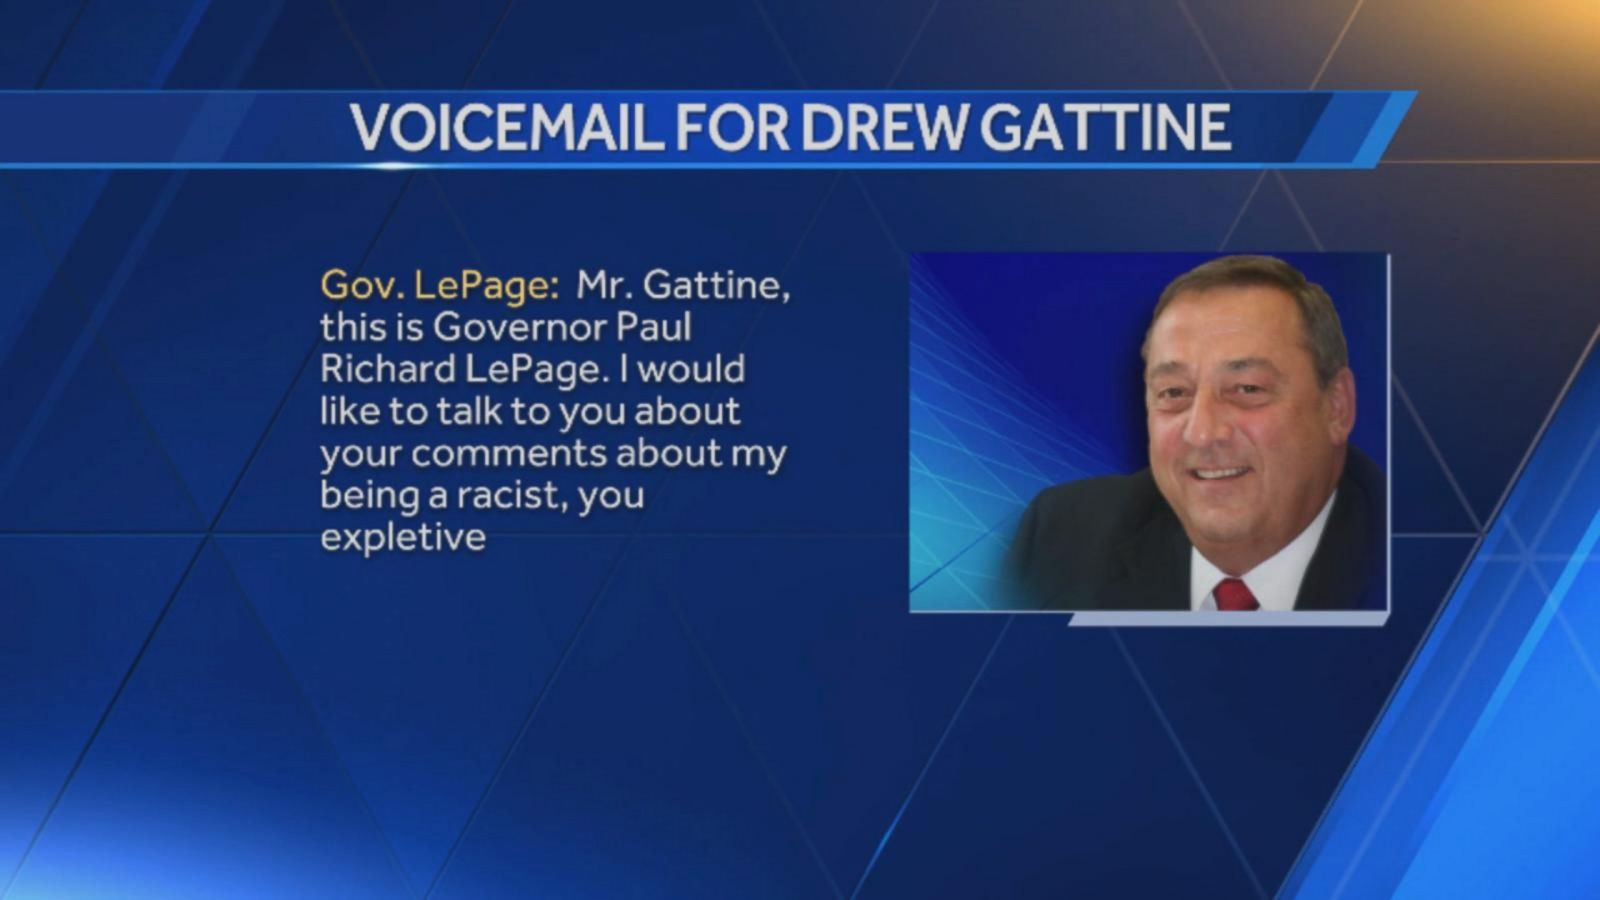 VIDEO: Maine Gov. Paul LePage Leaves Expletive-Filled Voicemail